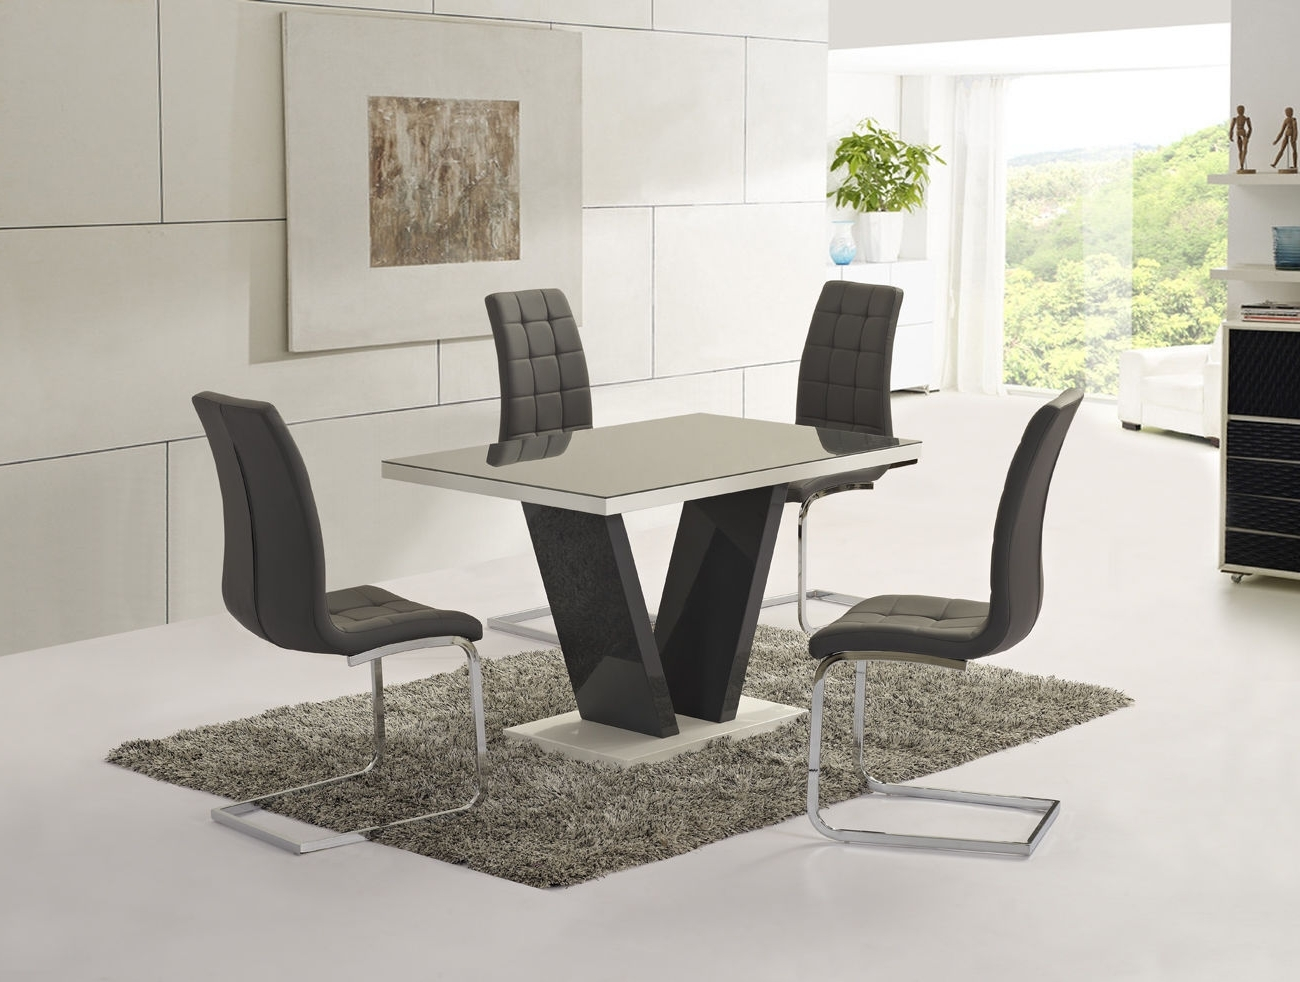 2017 White High Gloss Dining Tables And 4 Chairs pertaining to Ga Vico Gloss Grey Glass Top Designer 160Cm Dining Set - 4 6 Grey